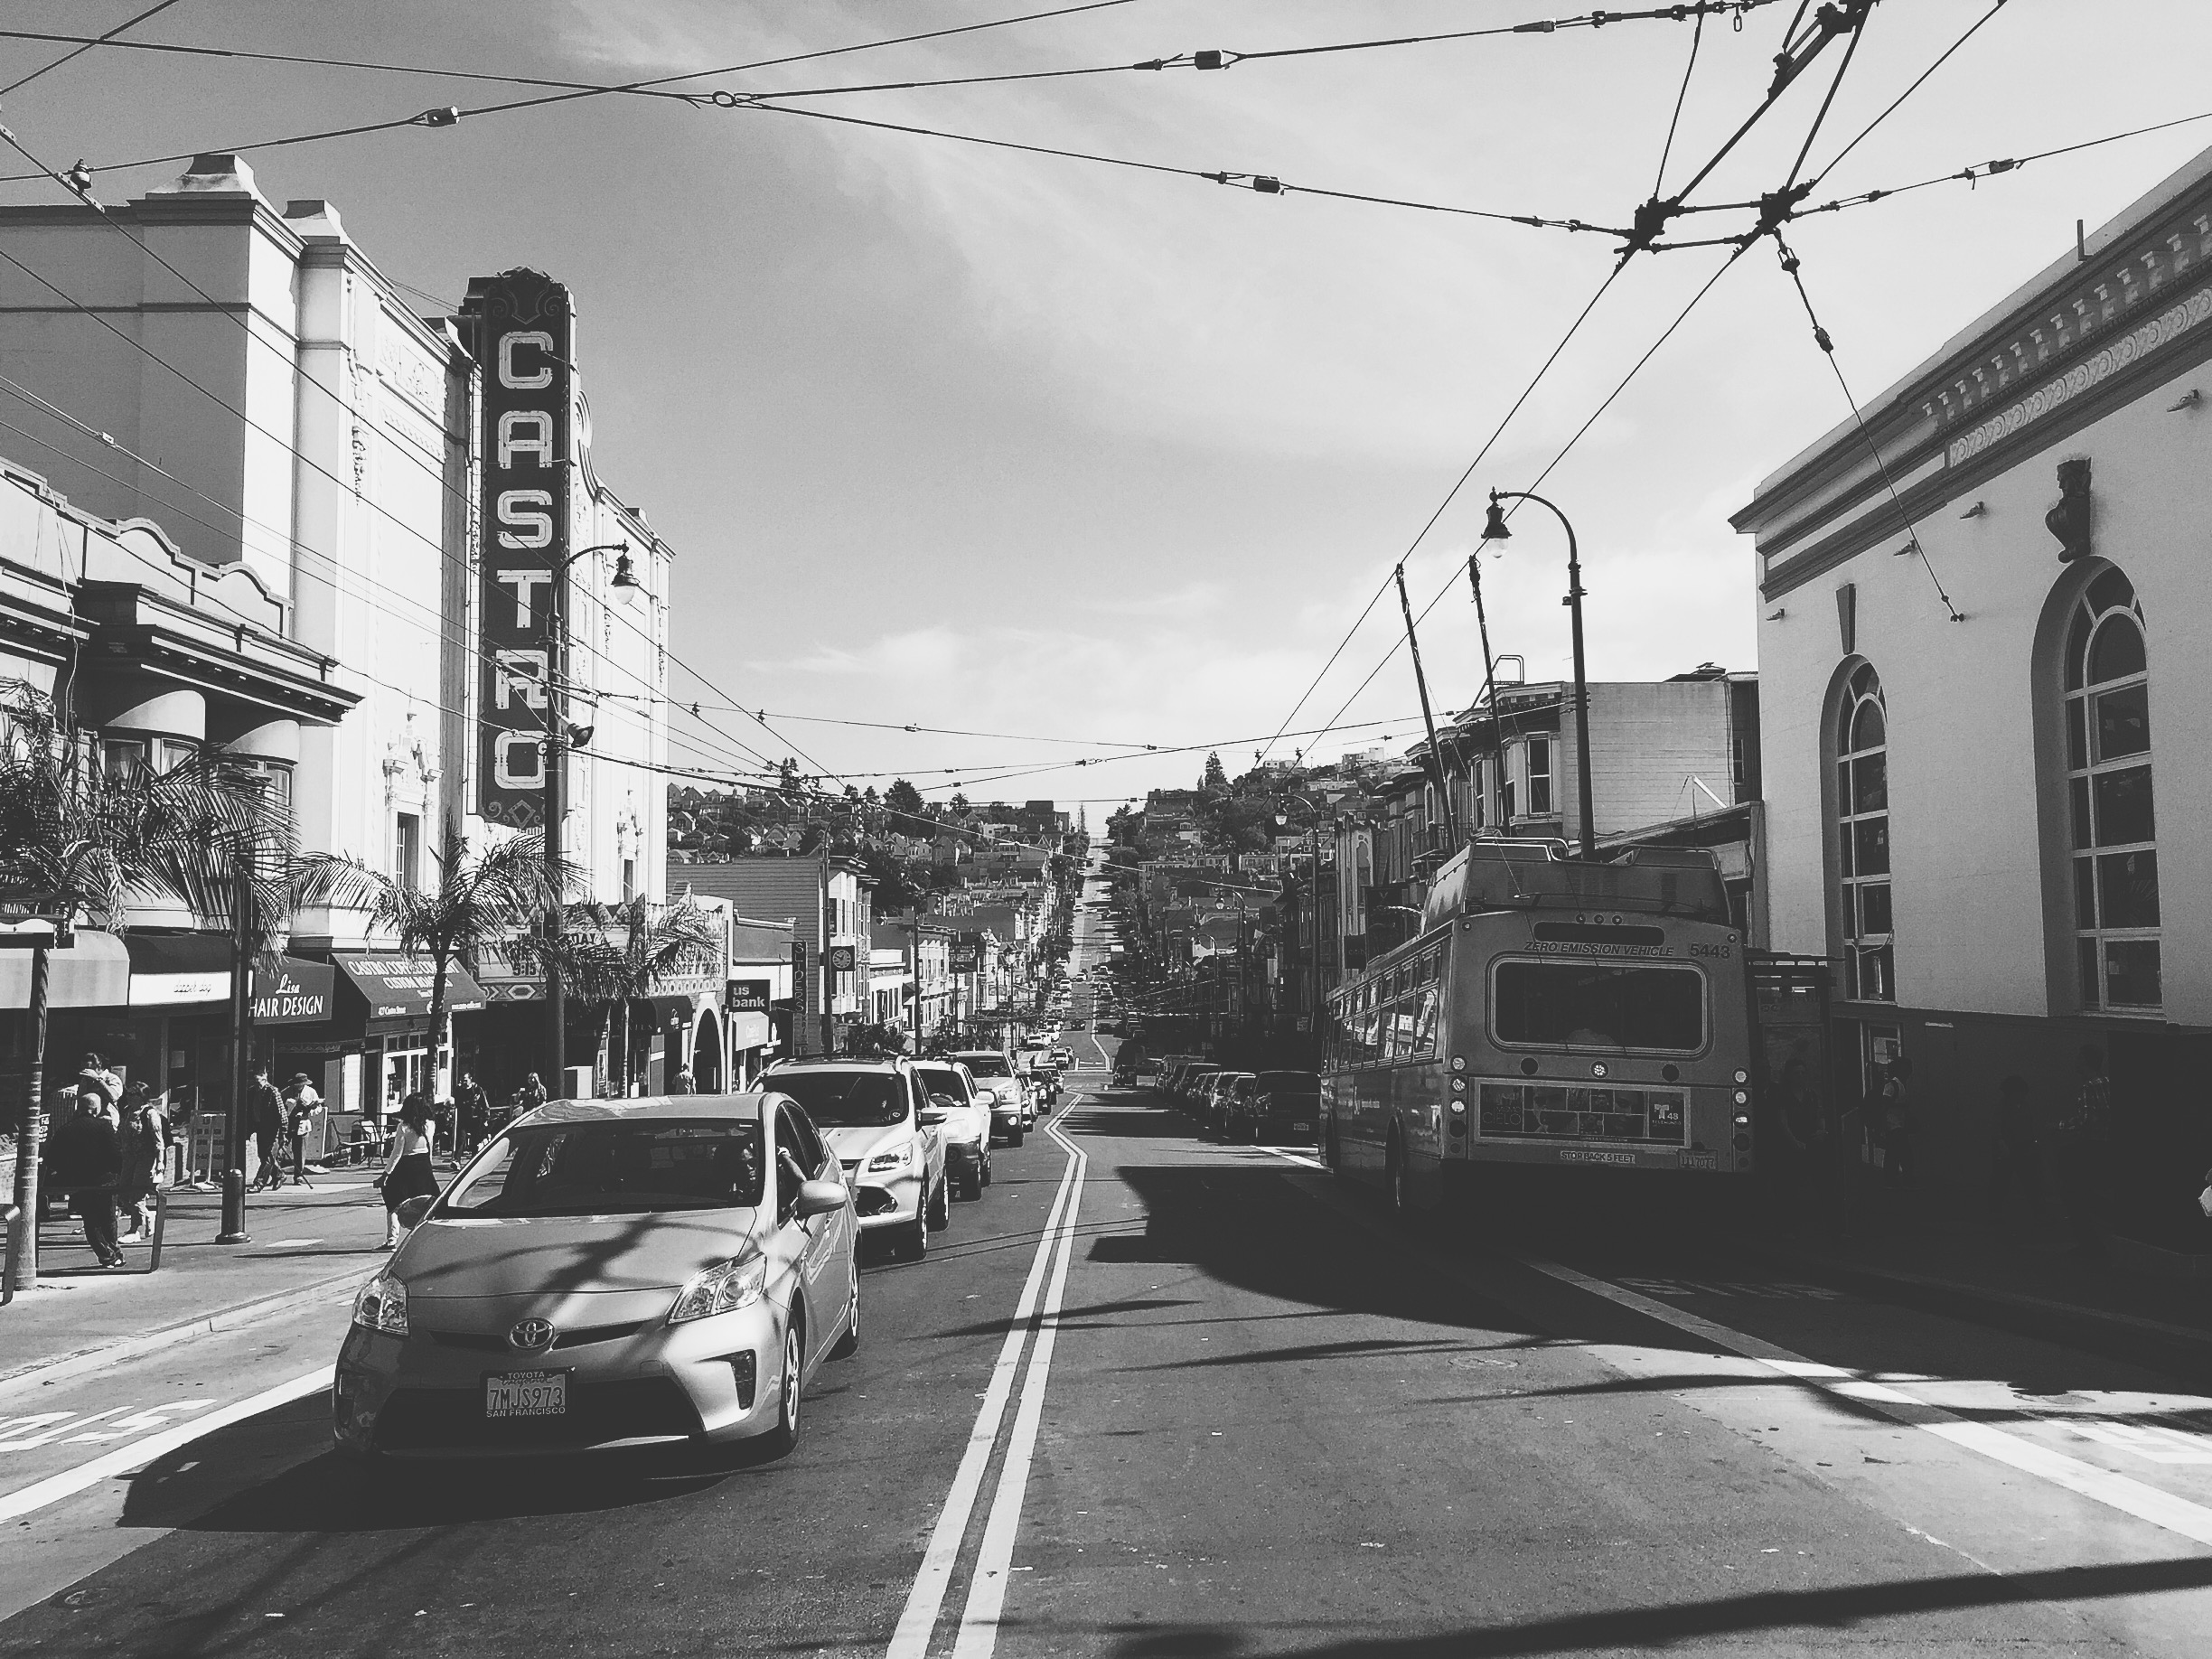 The Castro in SF